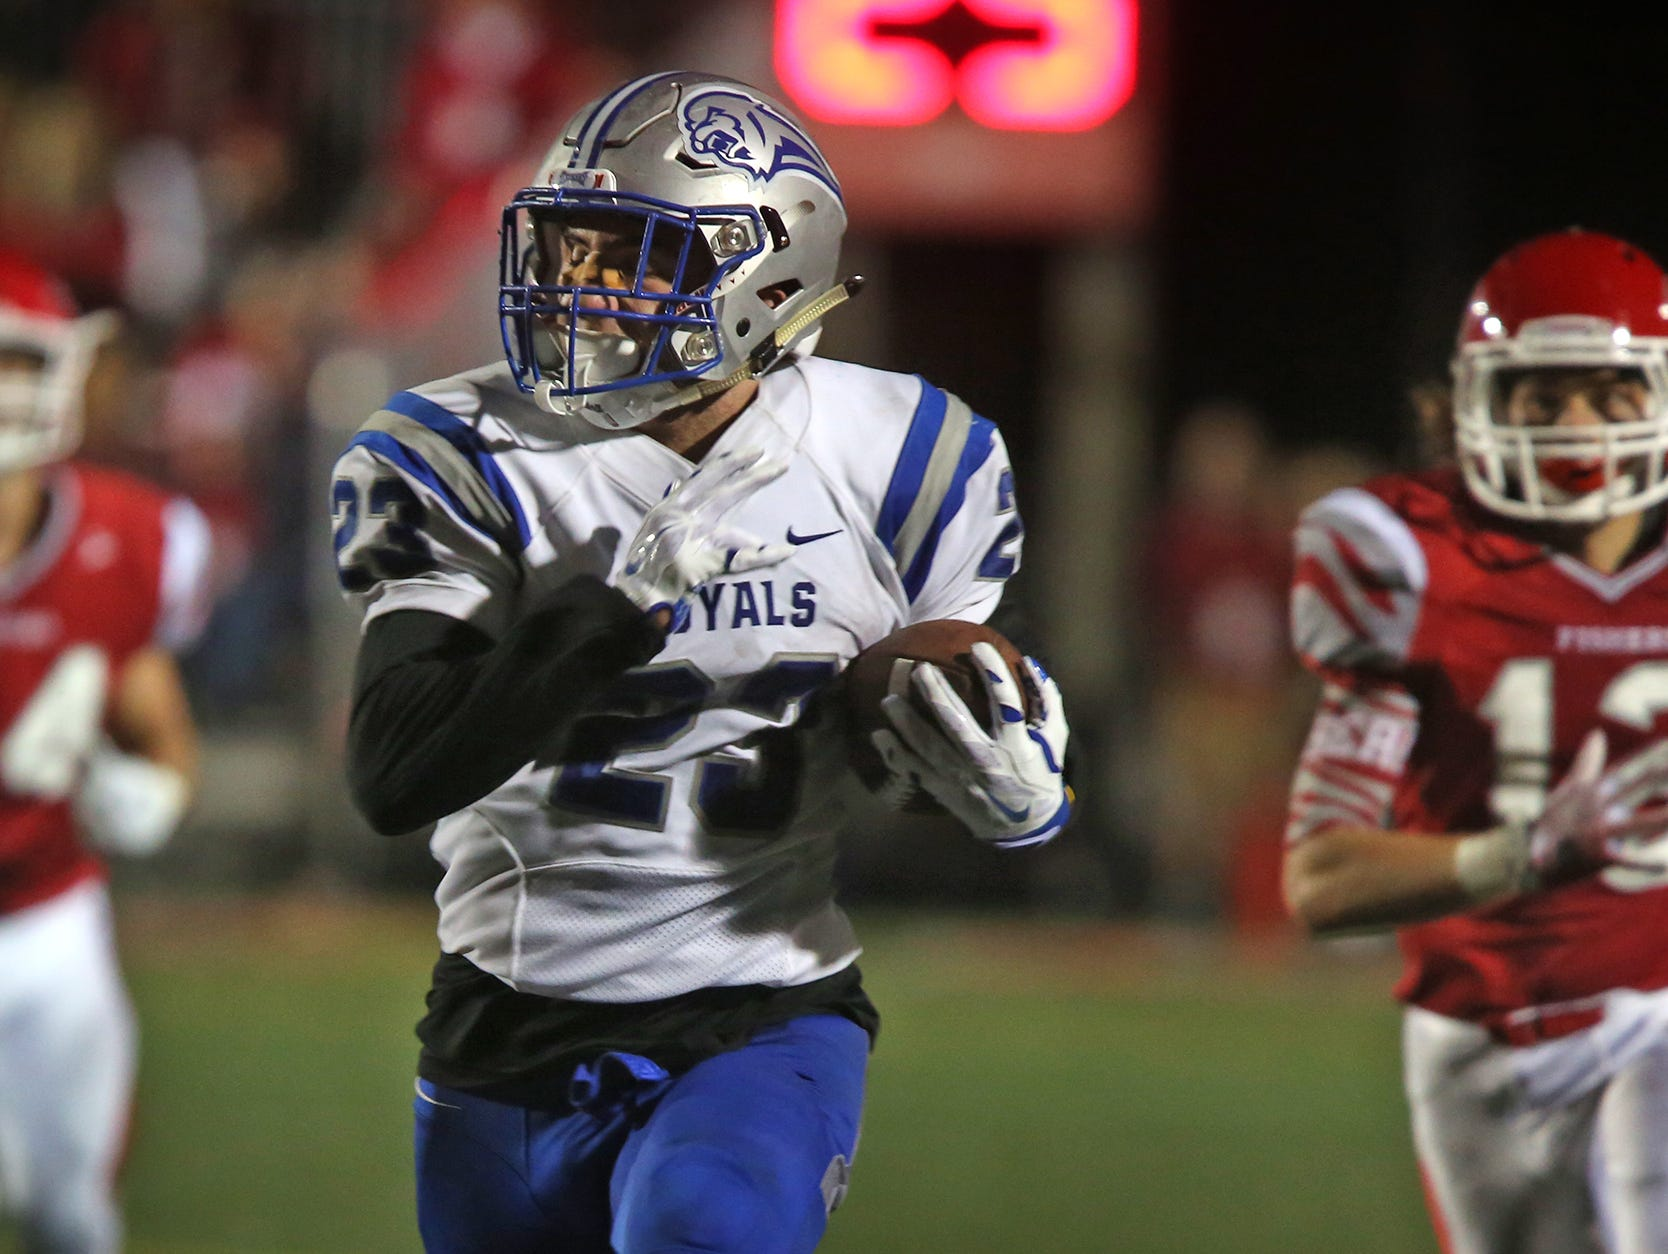 Hamilton Southeastern #23 Aaron Matio heads for the end zone during fourth quarter action of the Hamilton Southeastern at Fishers football game, Friday, September 11, 2015. Hamilton Southeastern won the game 39-33.